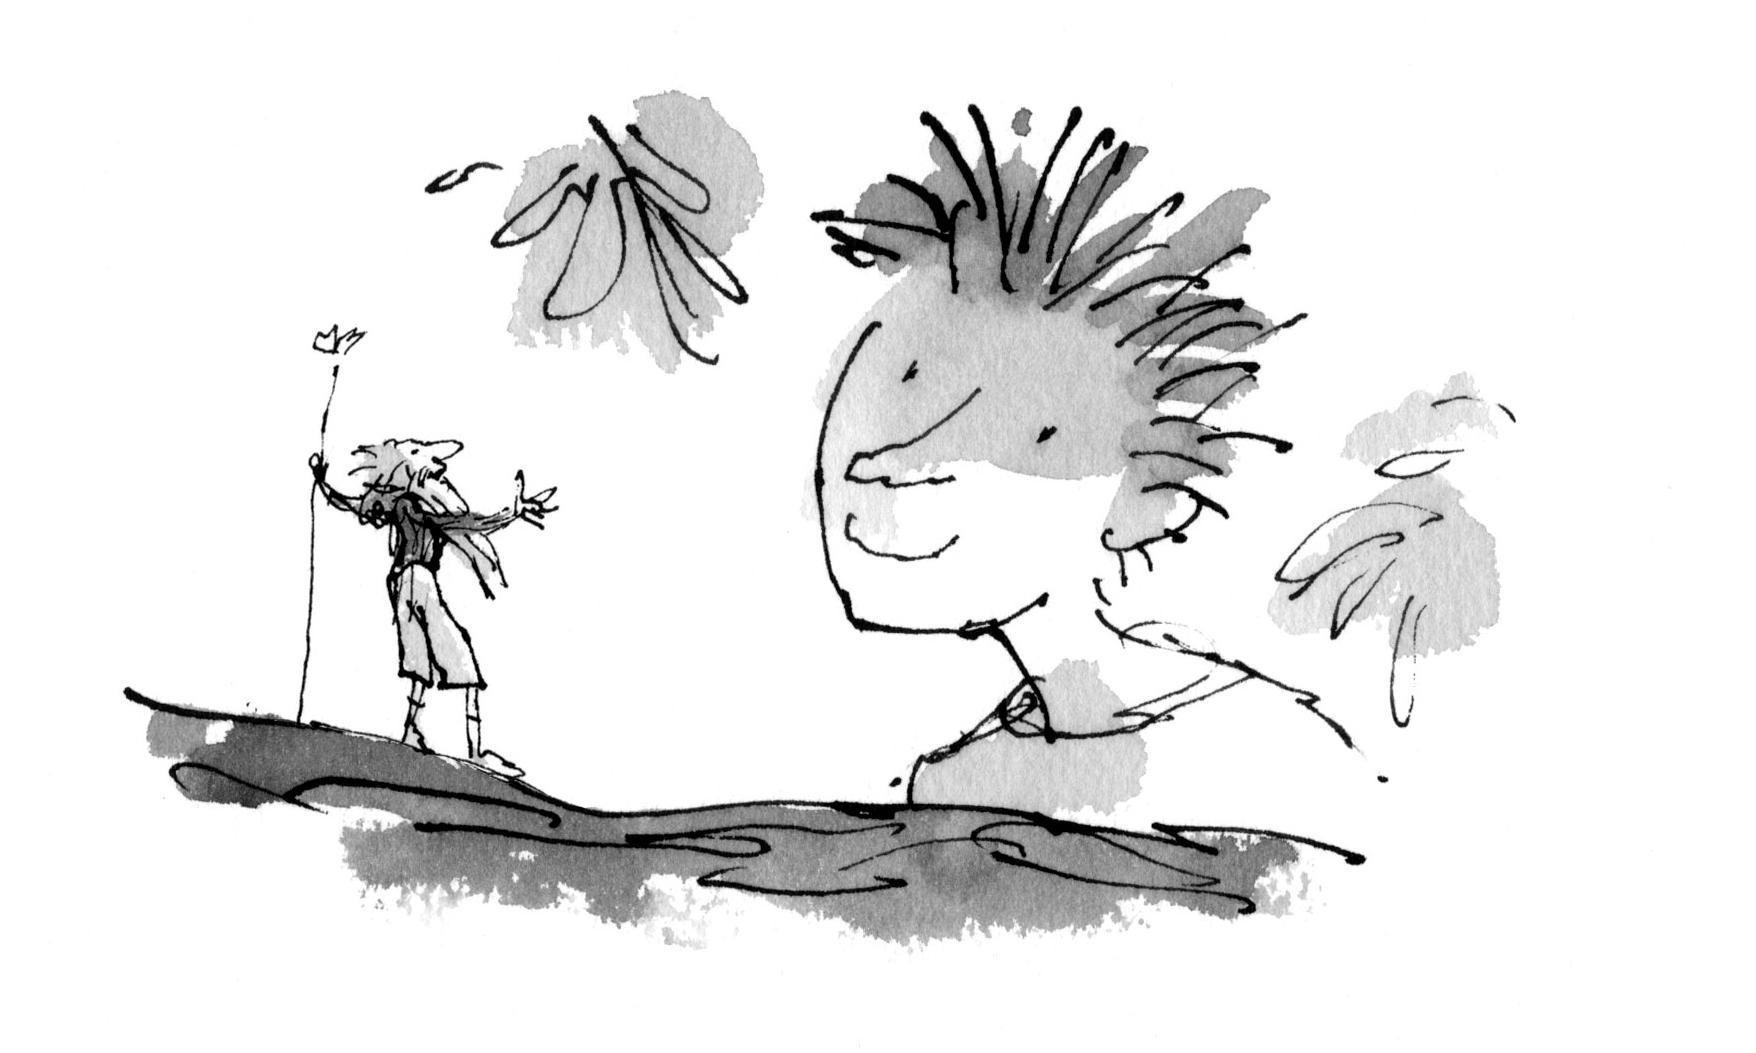 Quentin Blake: 'A new Roald Dahl character to draw, nearly 40 years after my first'